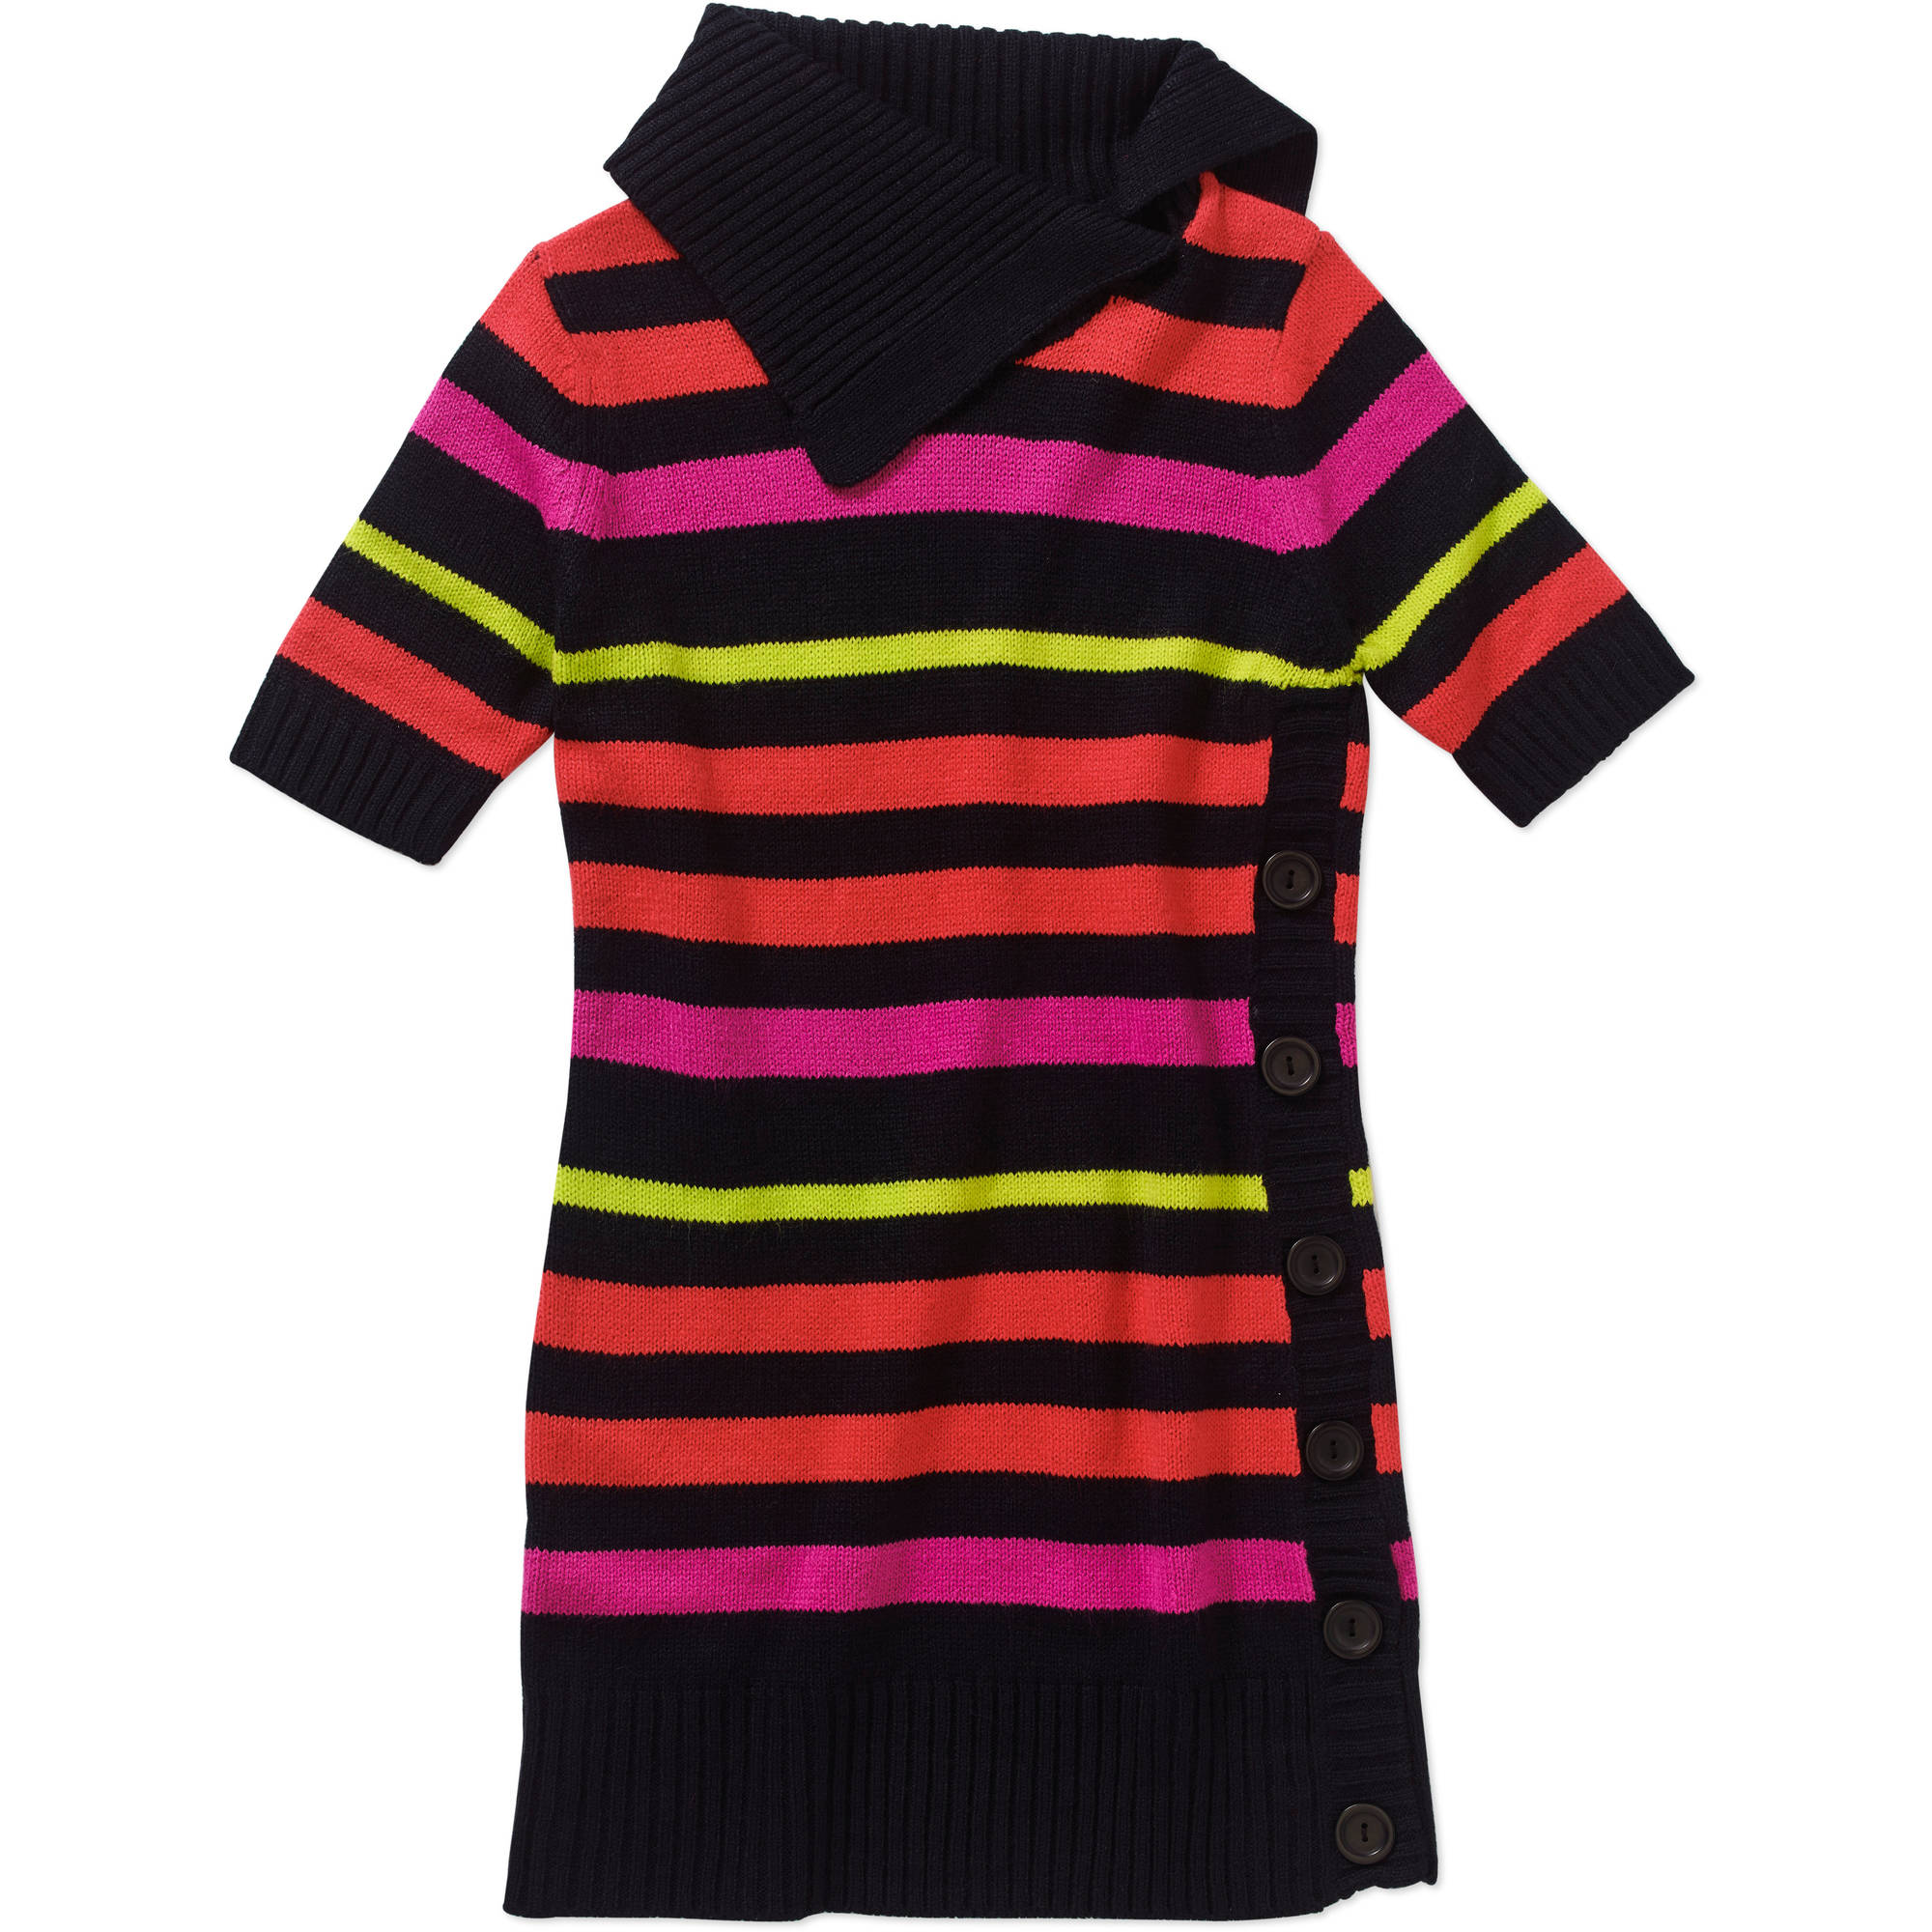 Derek Heart Girls' Stripe Cowl Neck Tunic with Side Placket